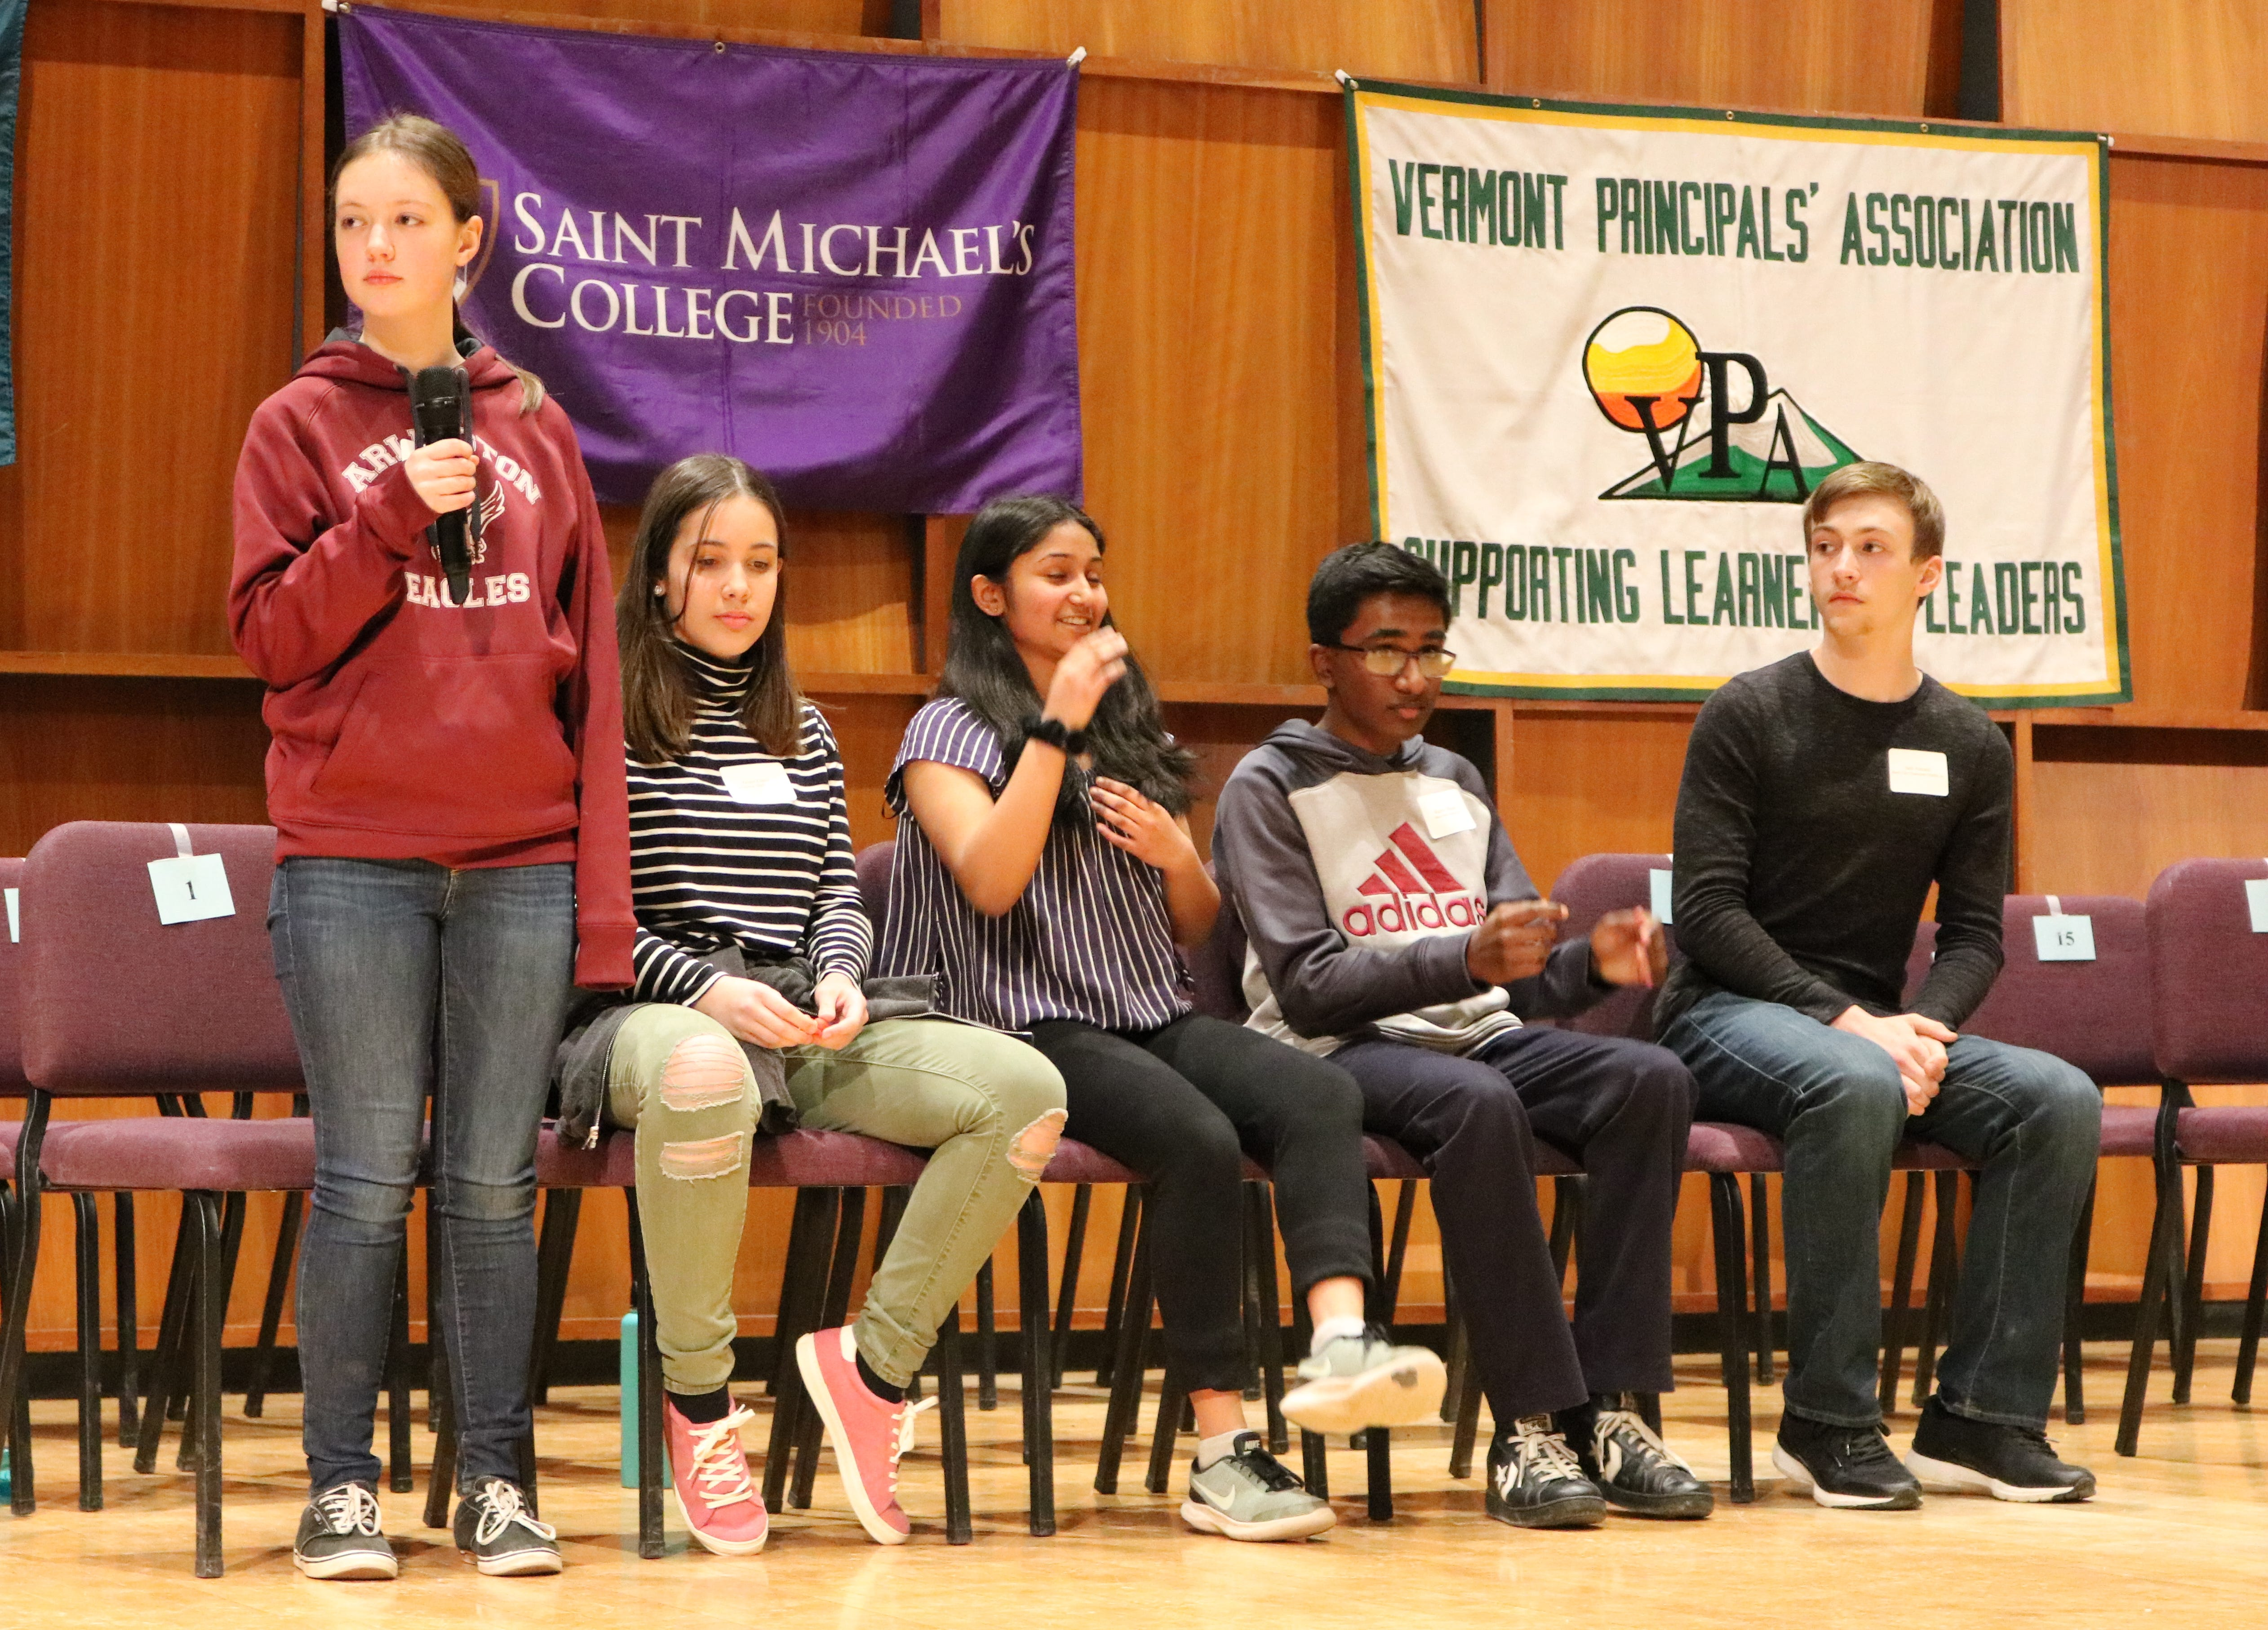 The final five sit together at the Vermont Scripps Spelling Bee at St. Michael's College on March 19, 2019. From left to right are: Audrey Robinson of Arlington Memorial, Grace Casey of Crossett Brook Middle School, Tanmaye Nazre of F. H. Tuttle Middle School, Raghav Dhandi of Main Street School, and Seth Almand of Barre City Middle School.